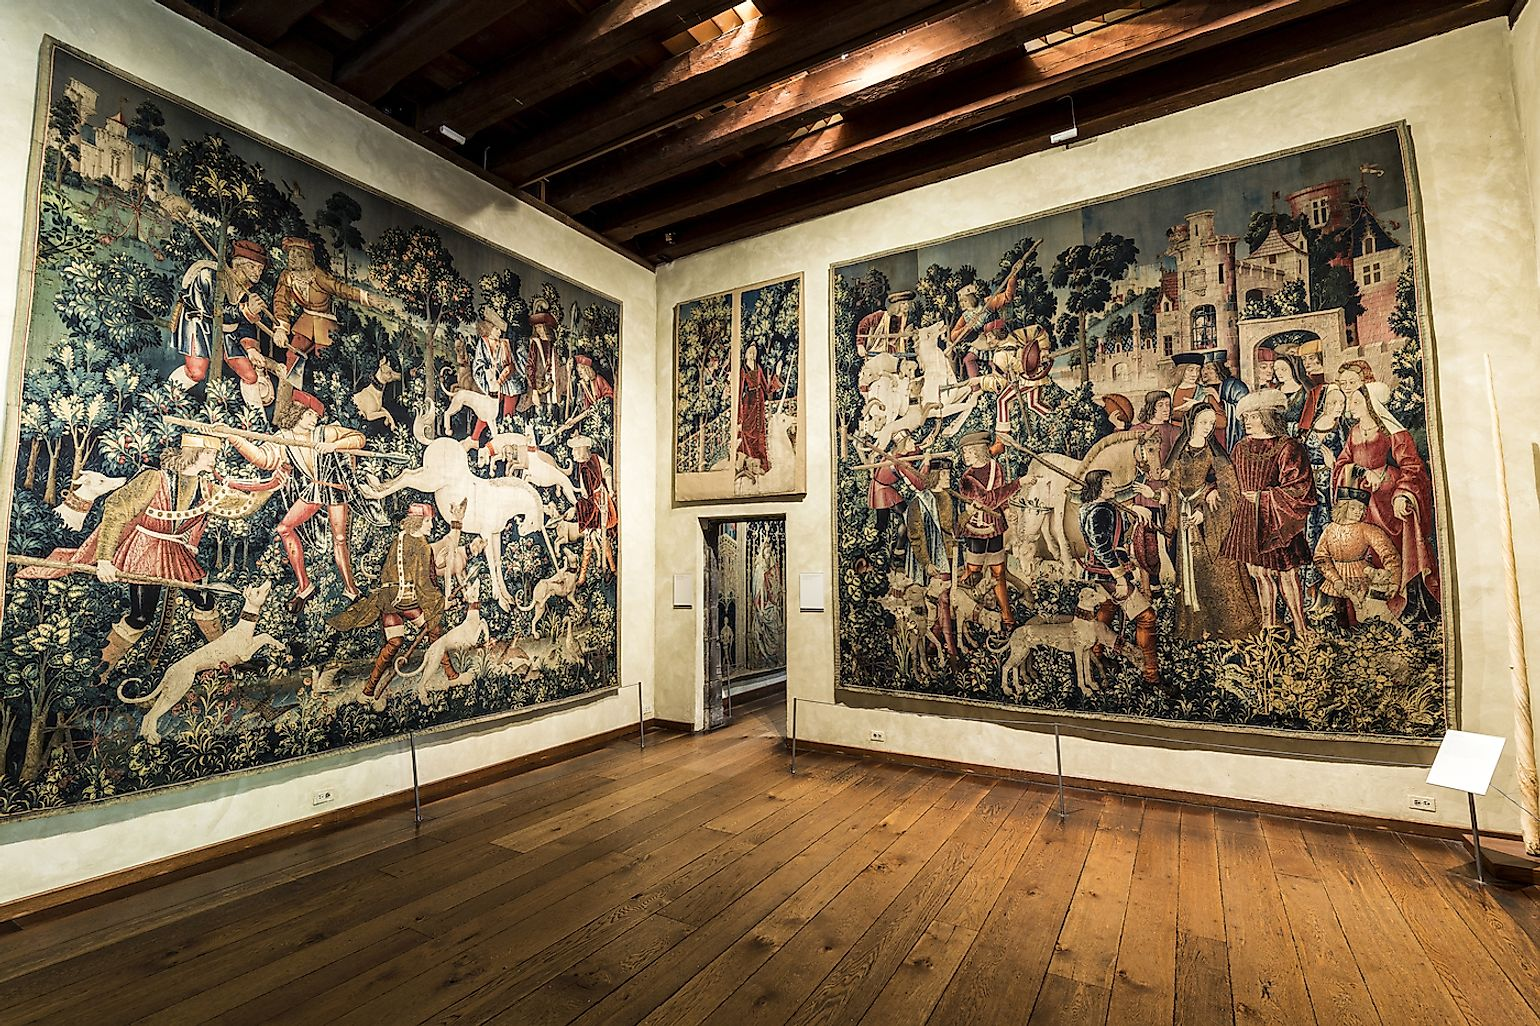 Famous unicorn tapestries in the Cloisters museum in New York, USA. Image credit: Travelview/Shutterstock.com